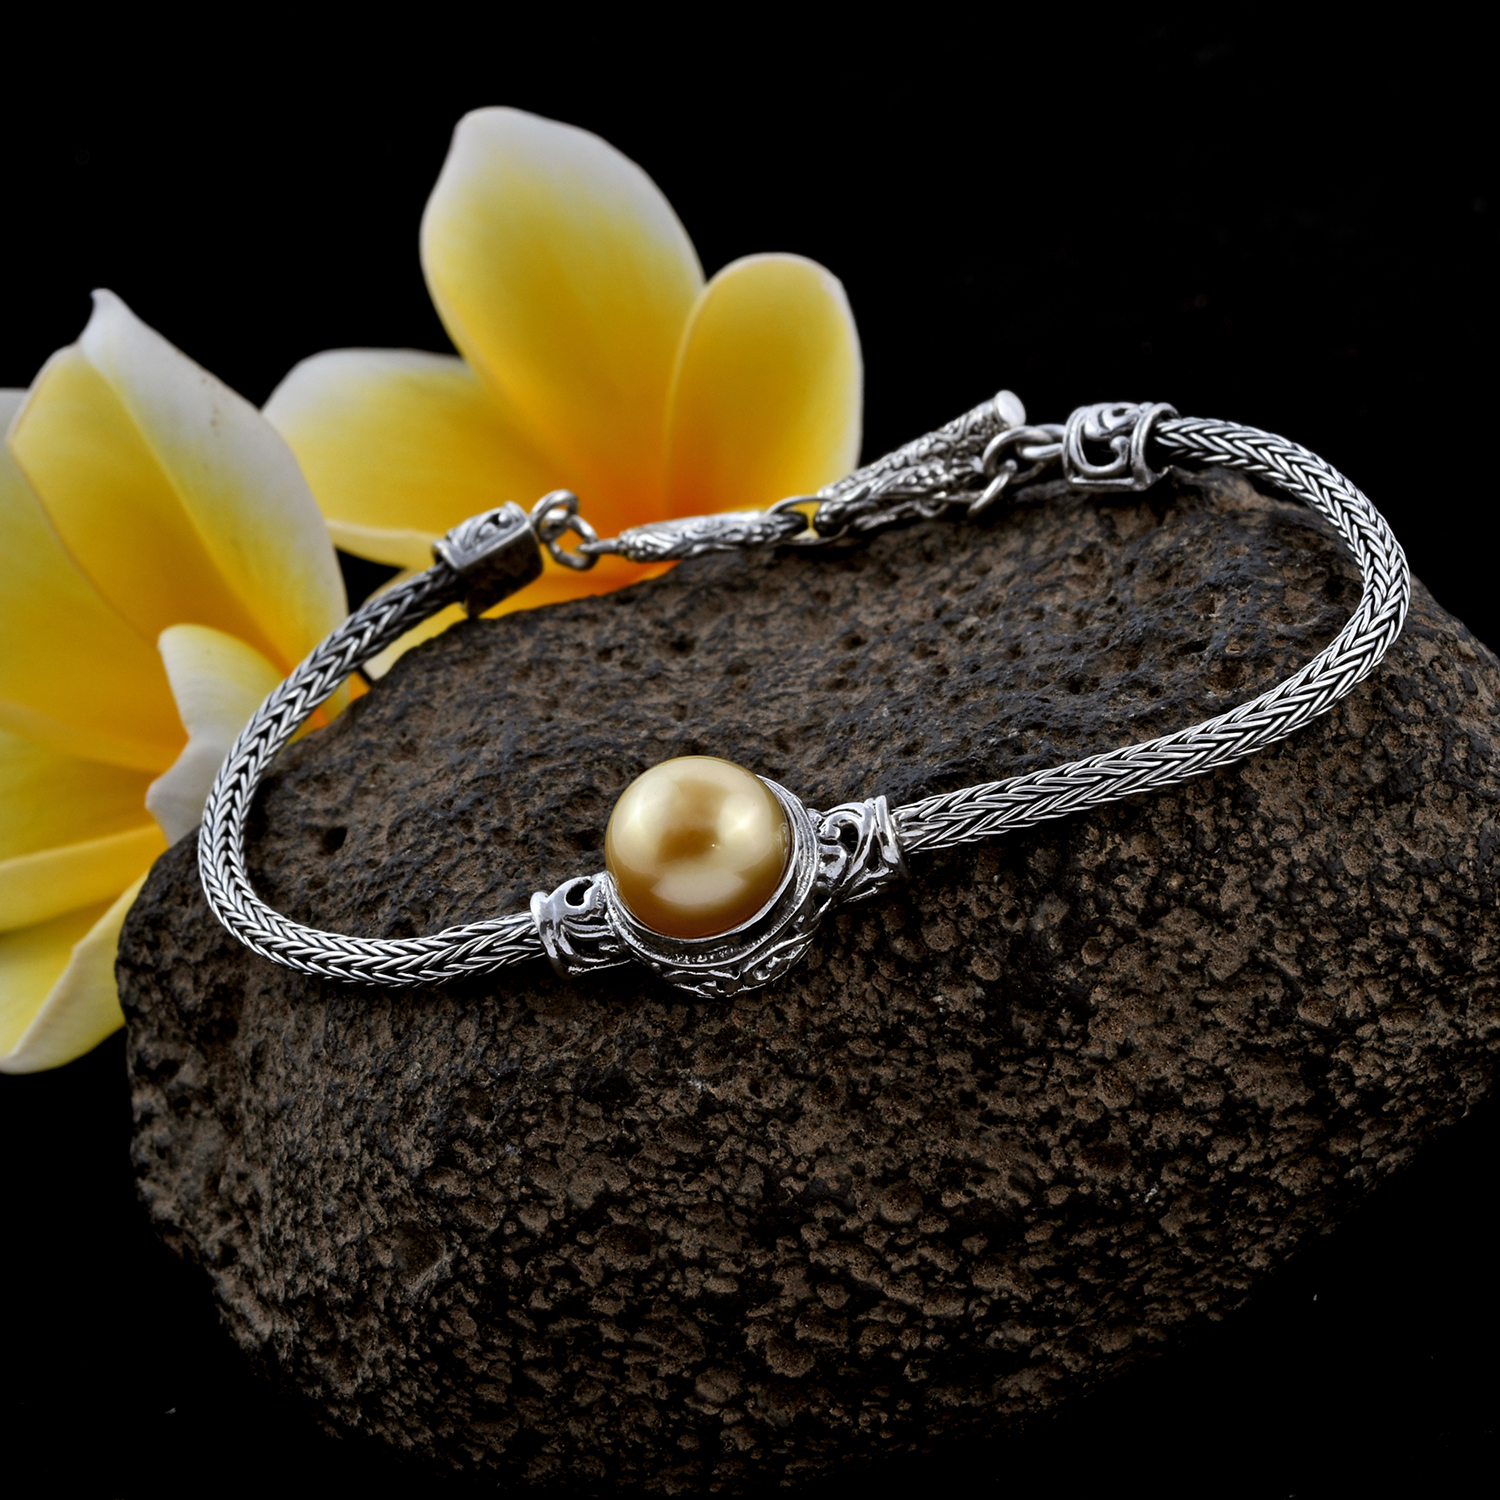 Bali silver bracelet featuring golden South Sea cultured pearl.